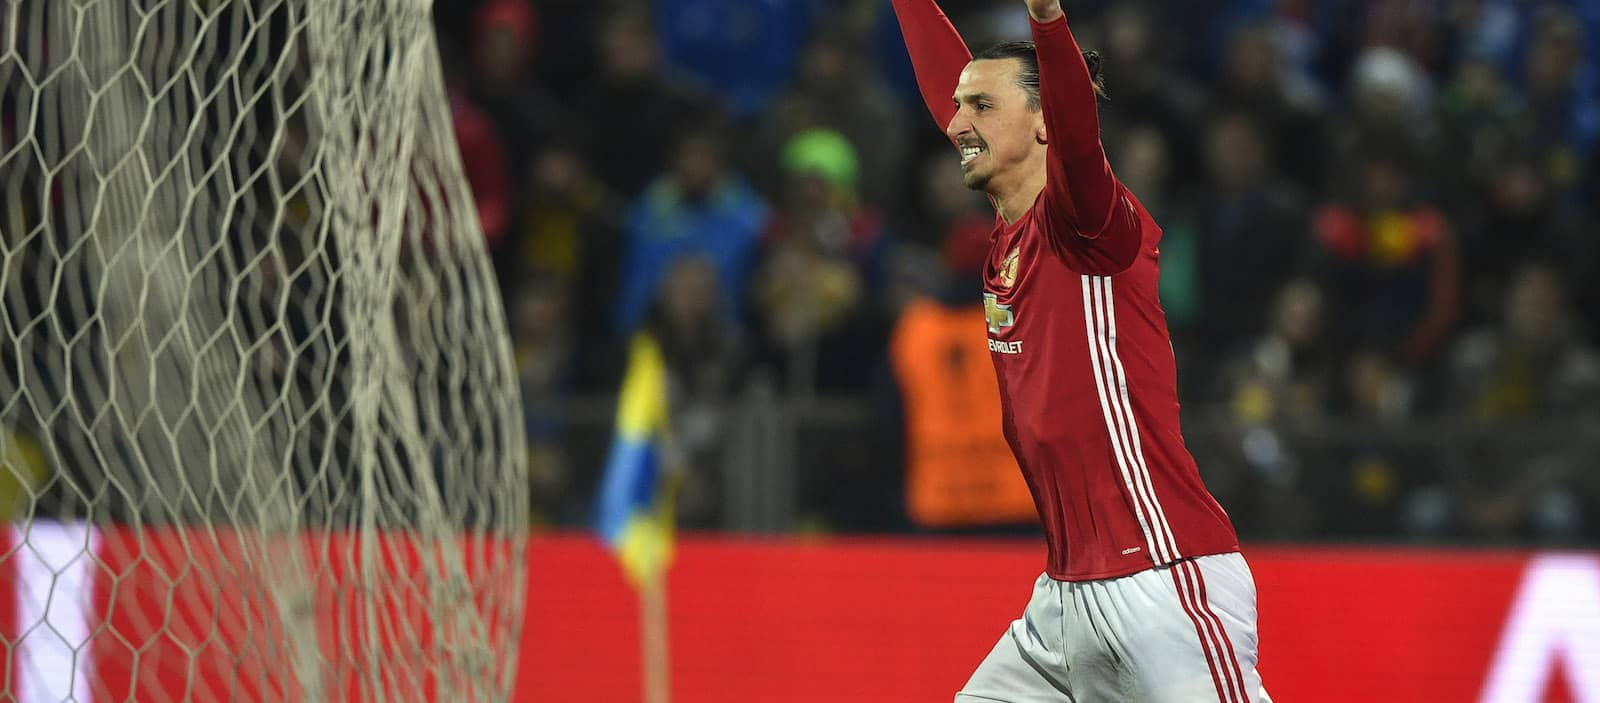 Gary Neville: Manchester United should offer Zlatan Ibrahimovic a two-year deal